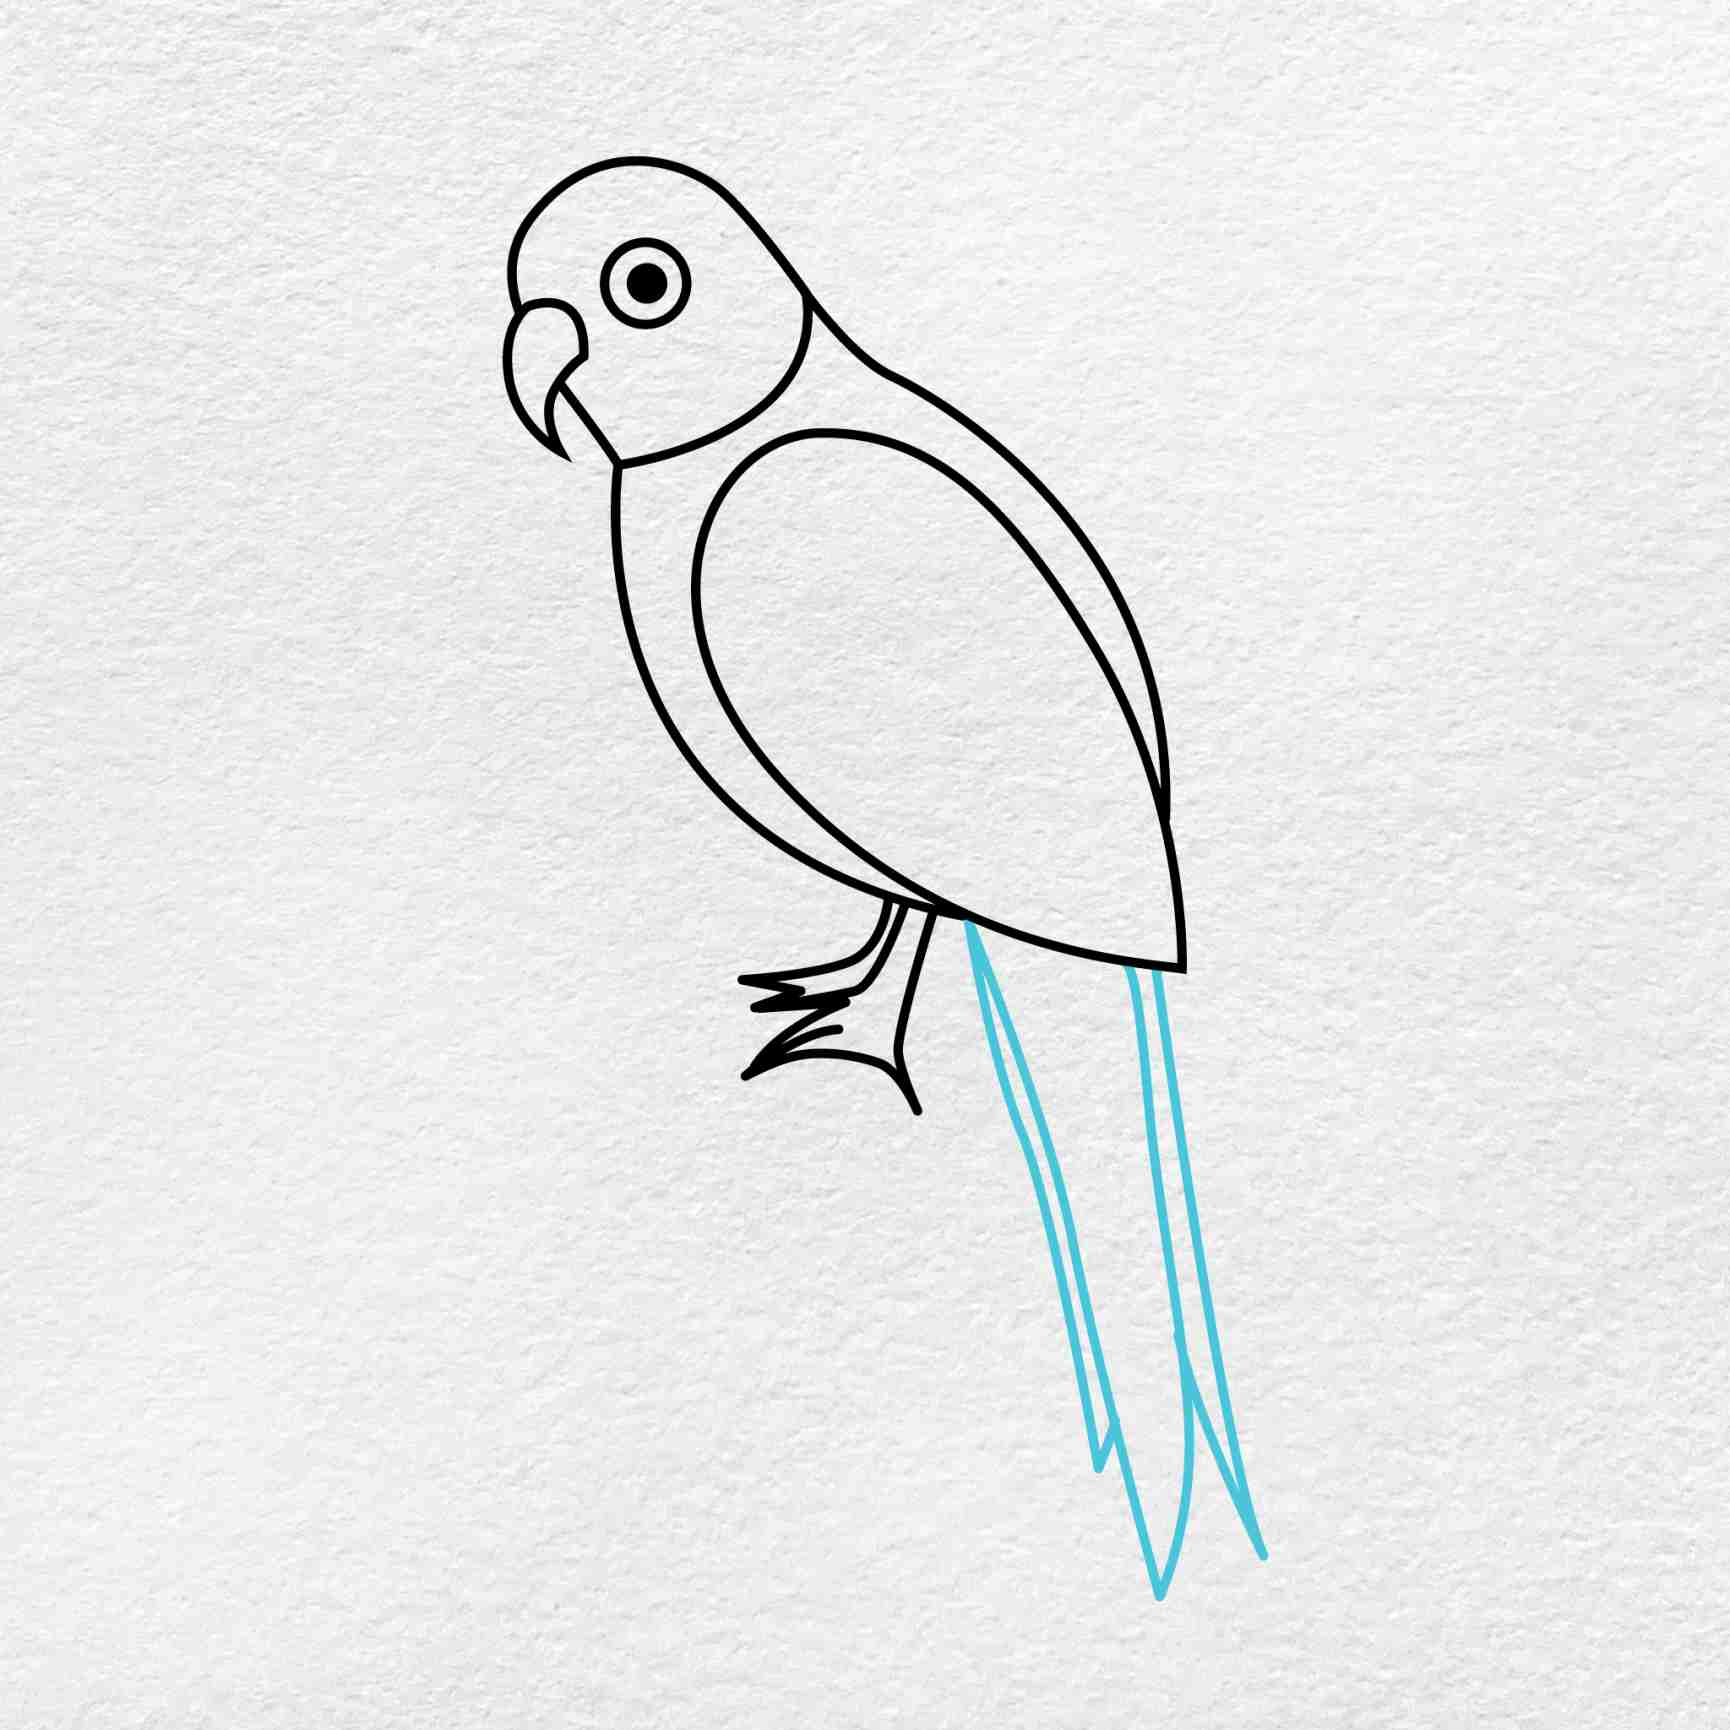 How To Draw A Parrot: Step 5